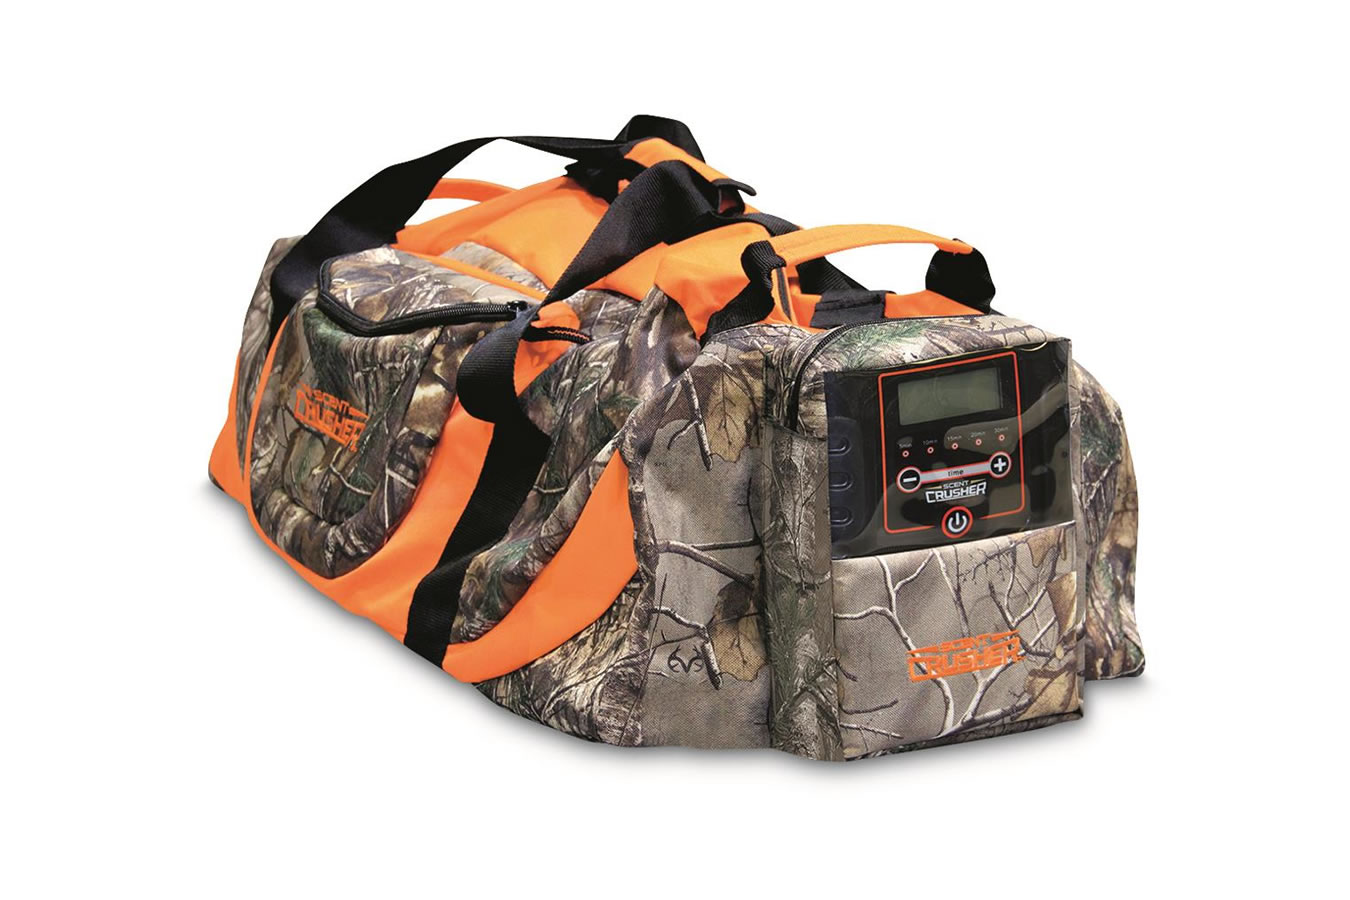 Scent Crusher Ozone Scent Elimination System Gear Bag